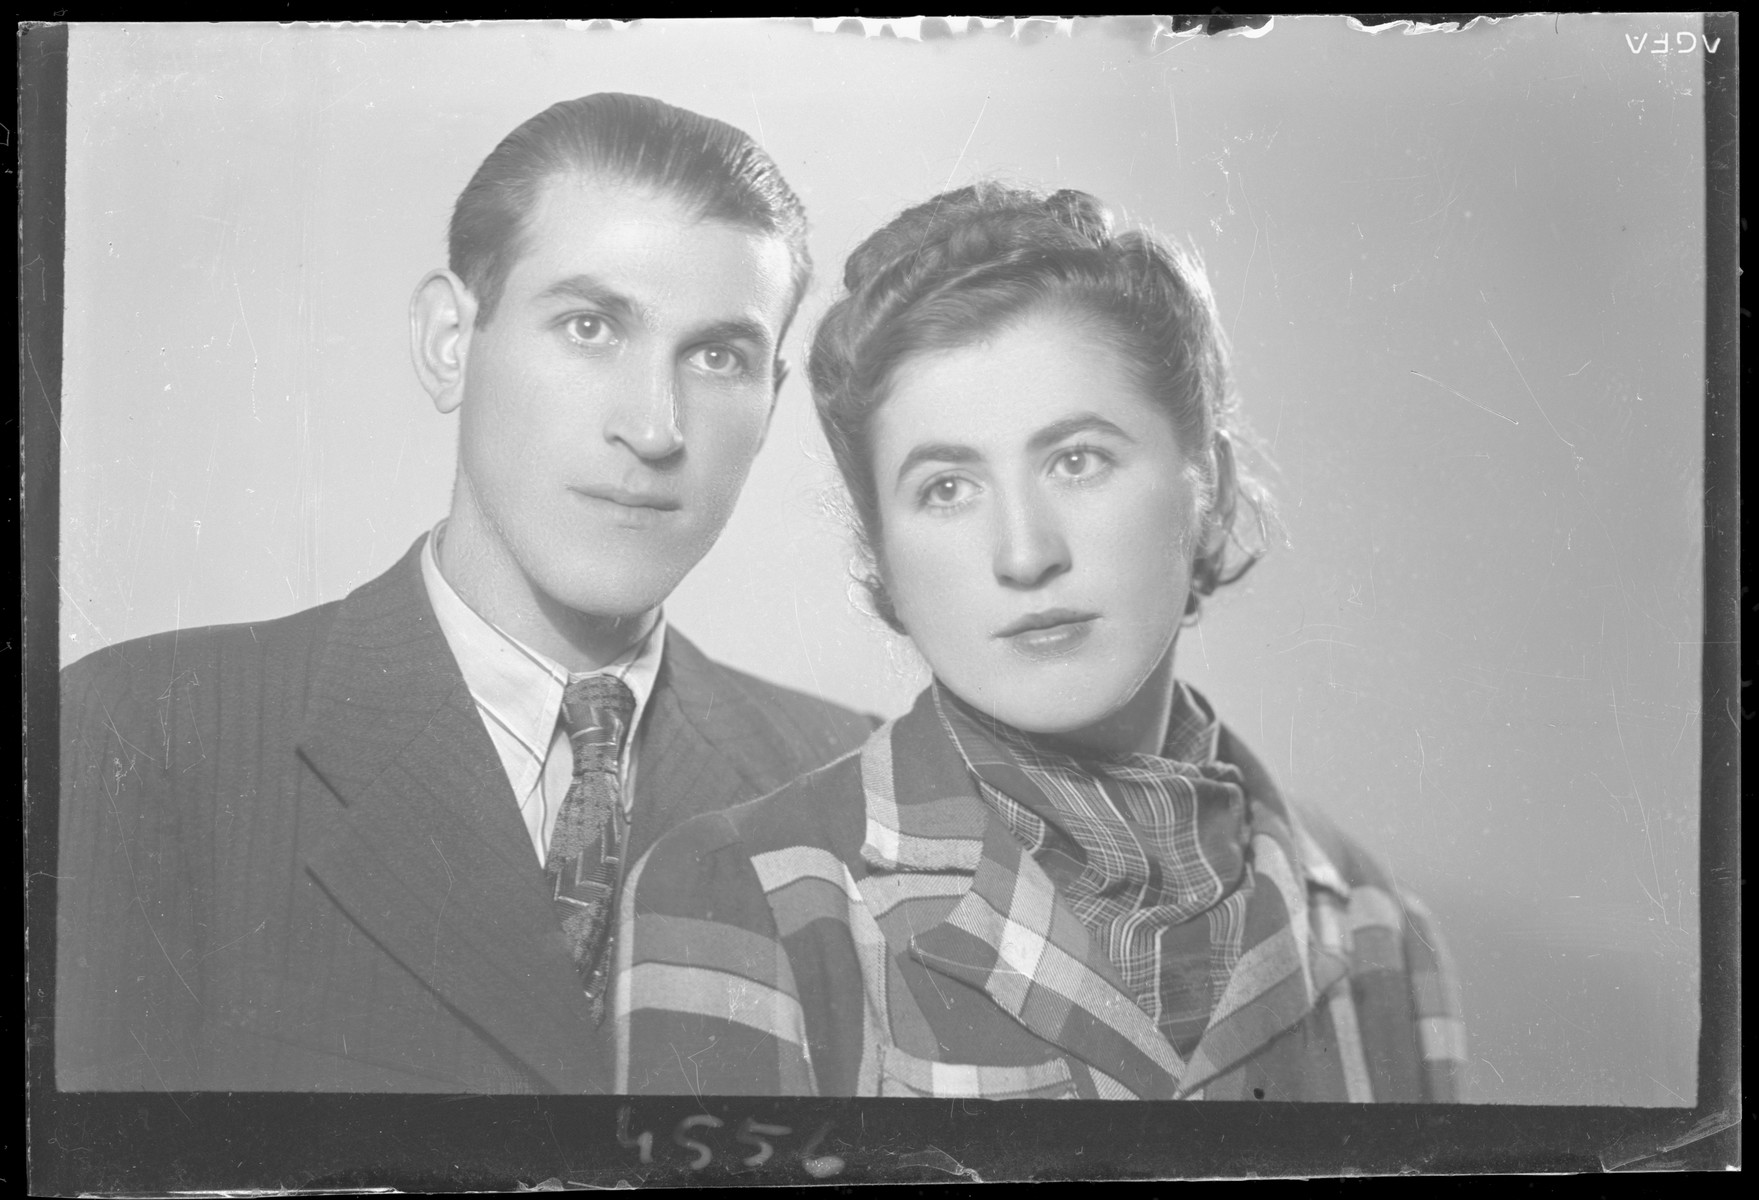 Studio portrait of Sene Markovits and his [girlfriend/wife].